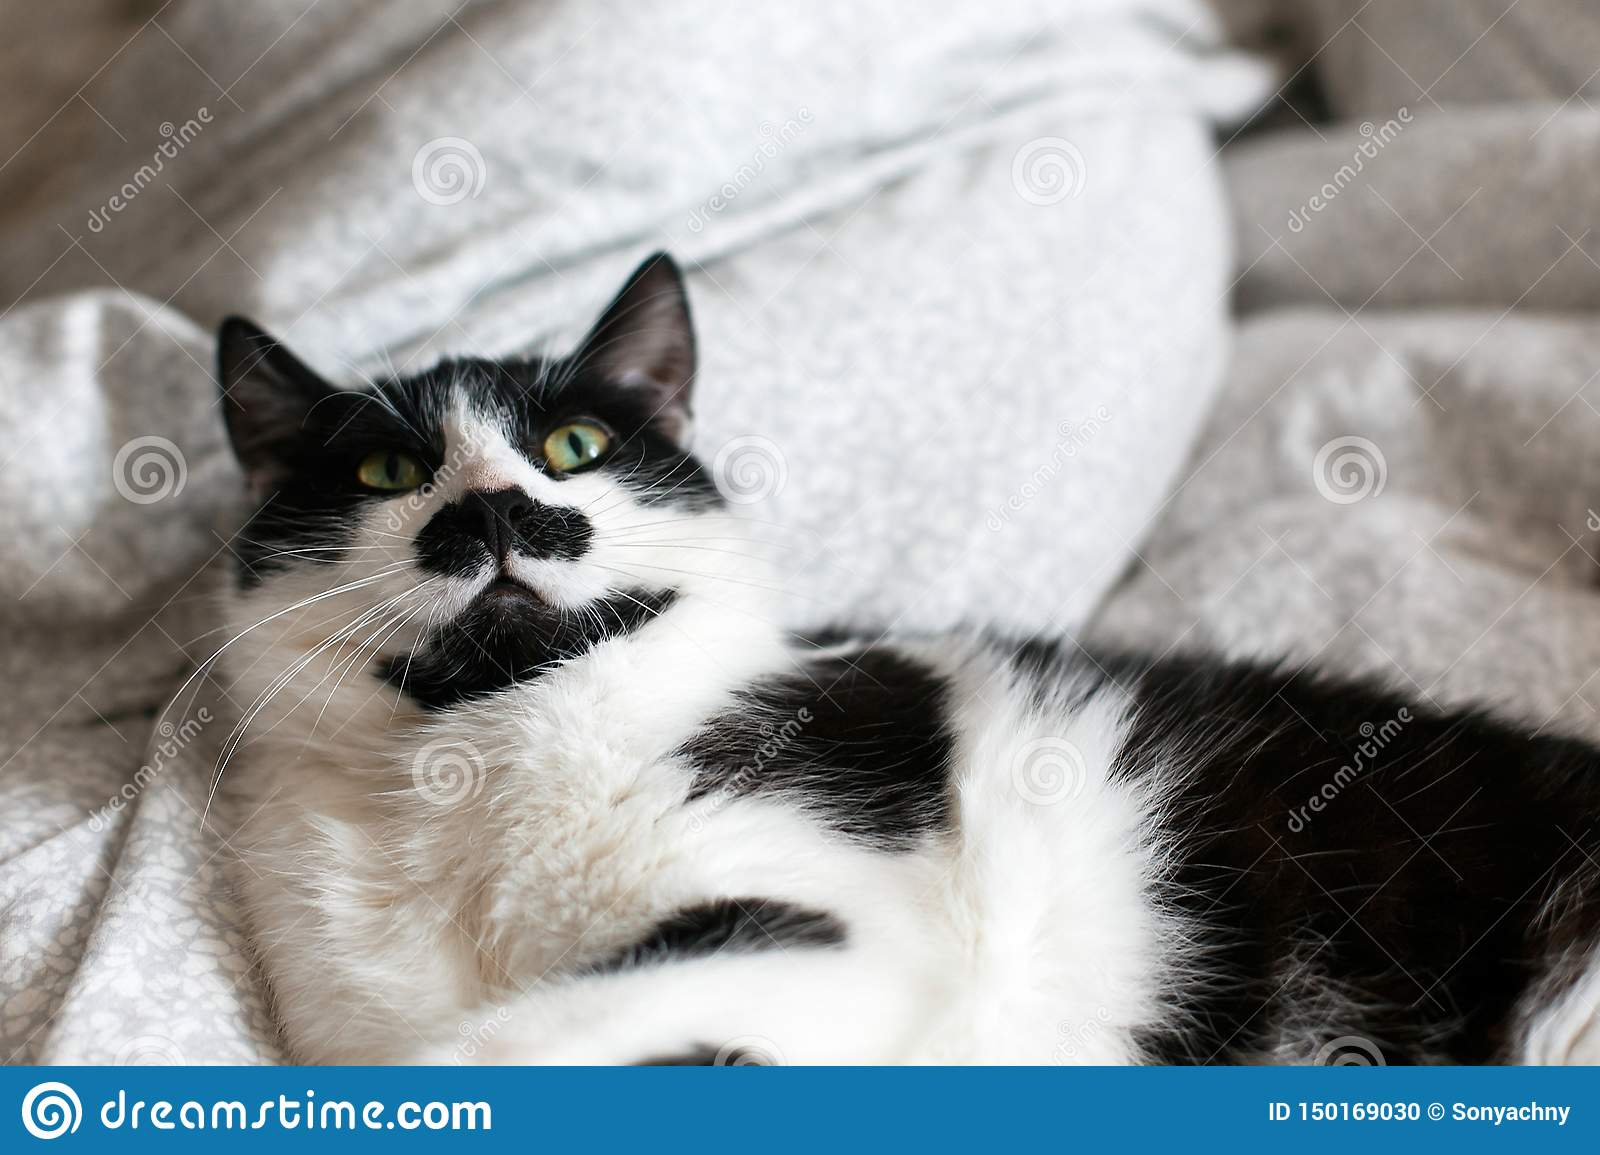 Cute cat with mustache lying and relaxing on bed. Funny black and white kitty with angry emotions resting on stylish sheets. Space